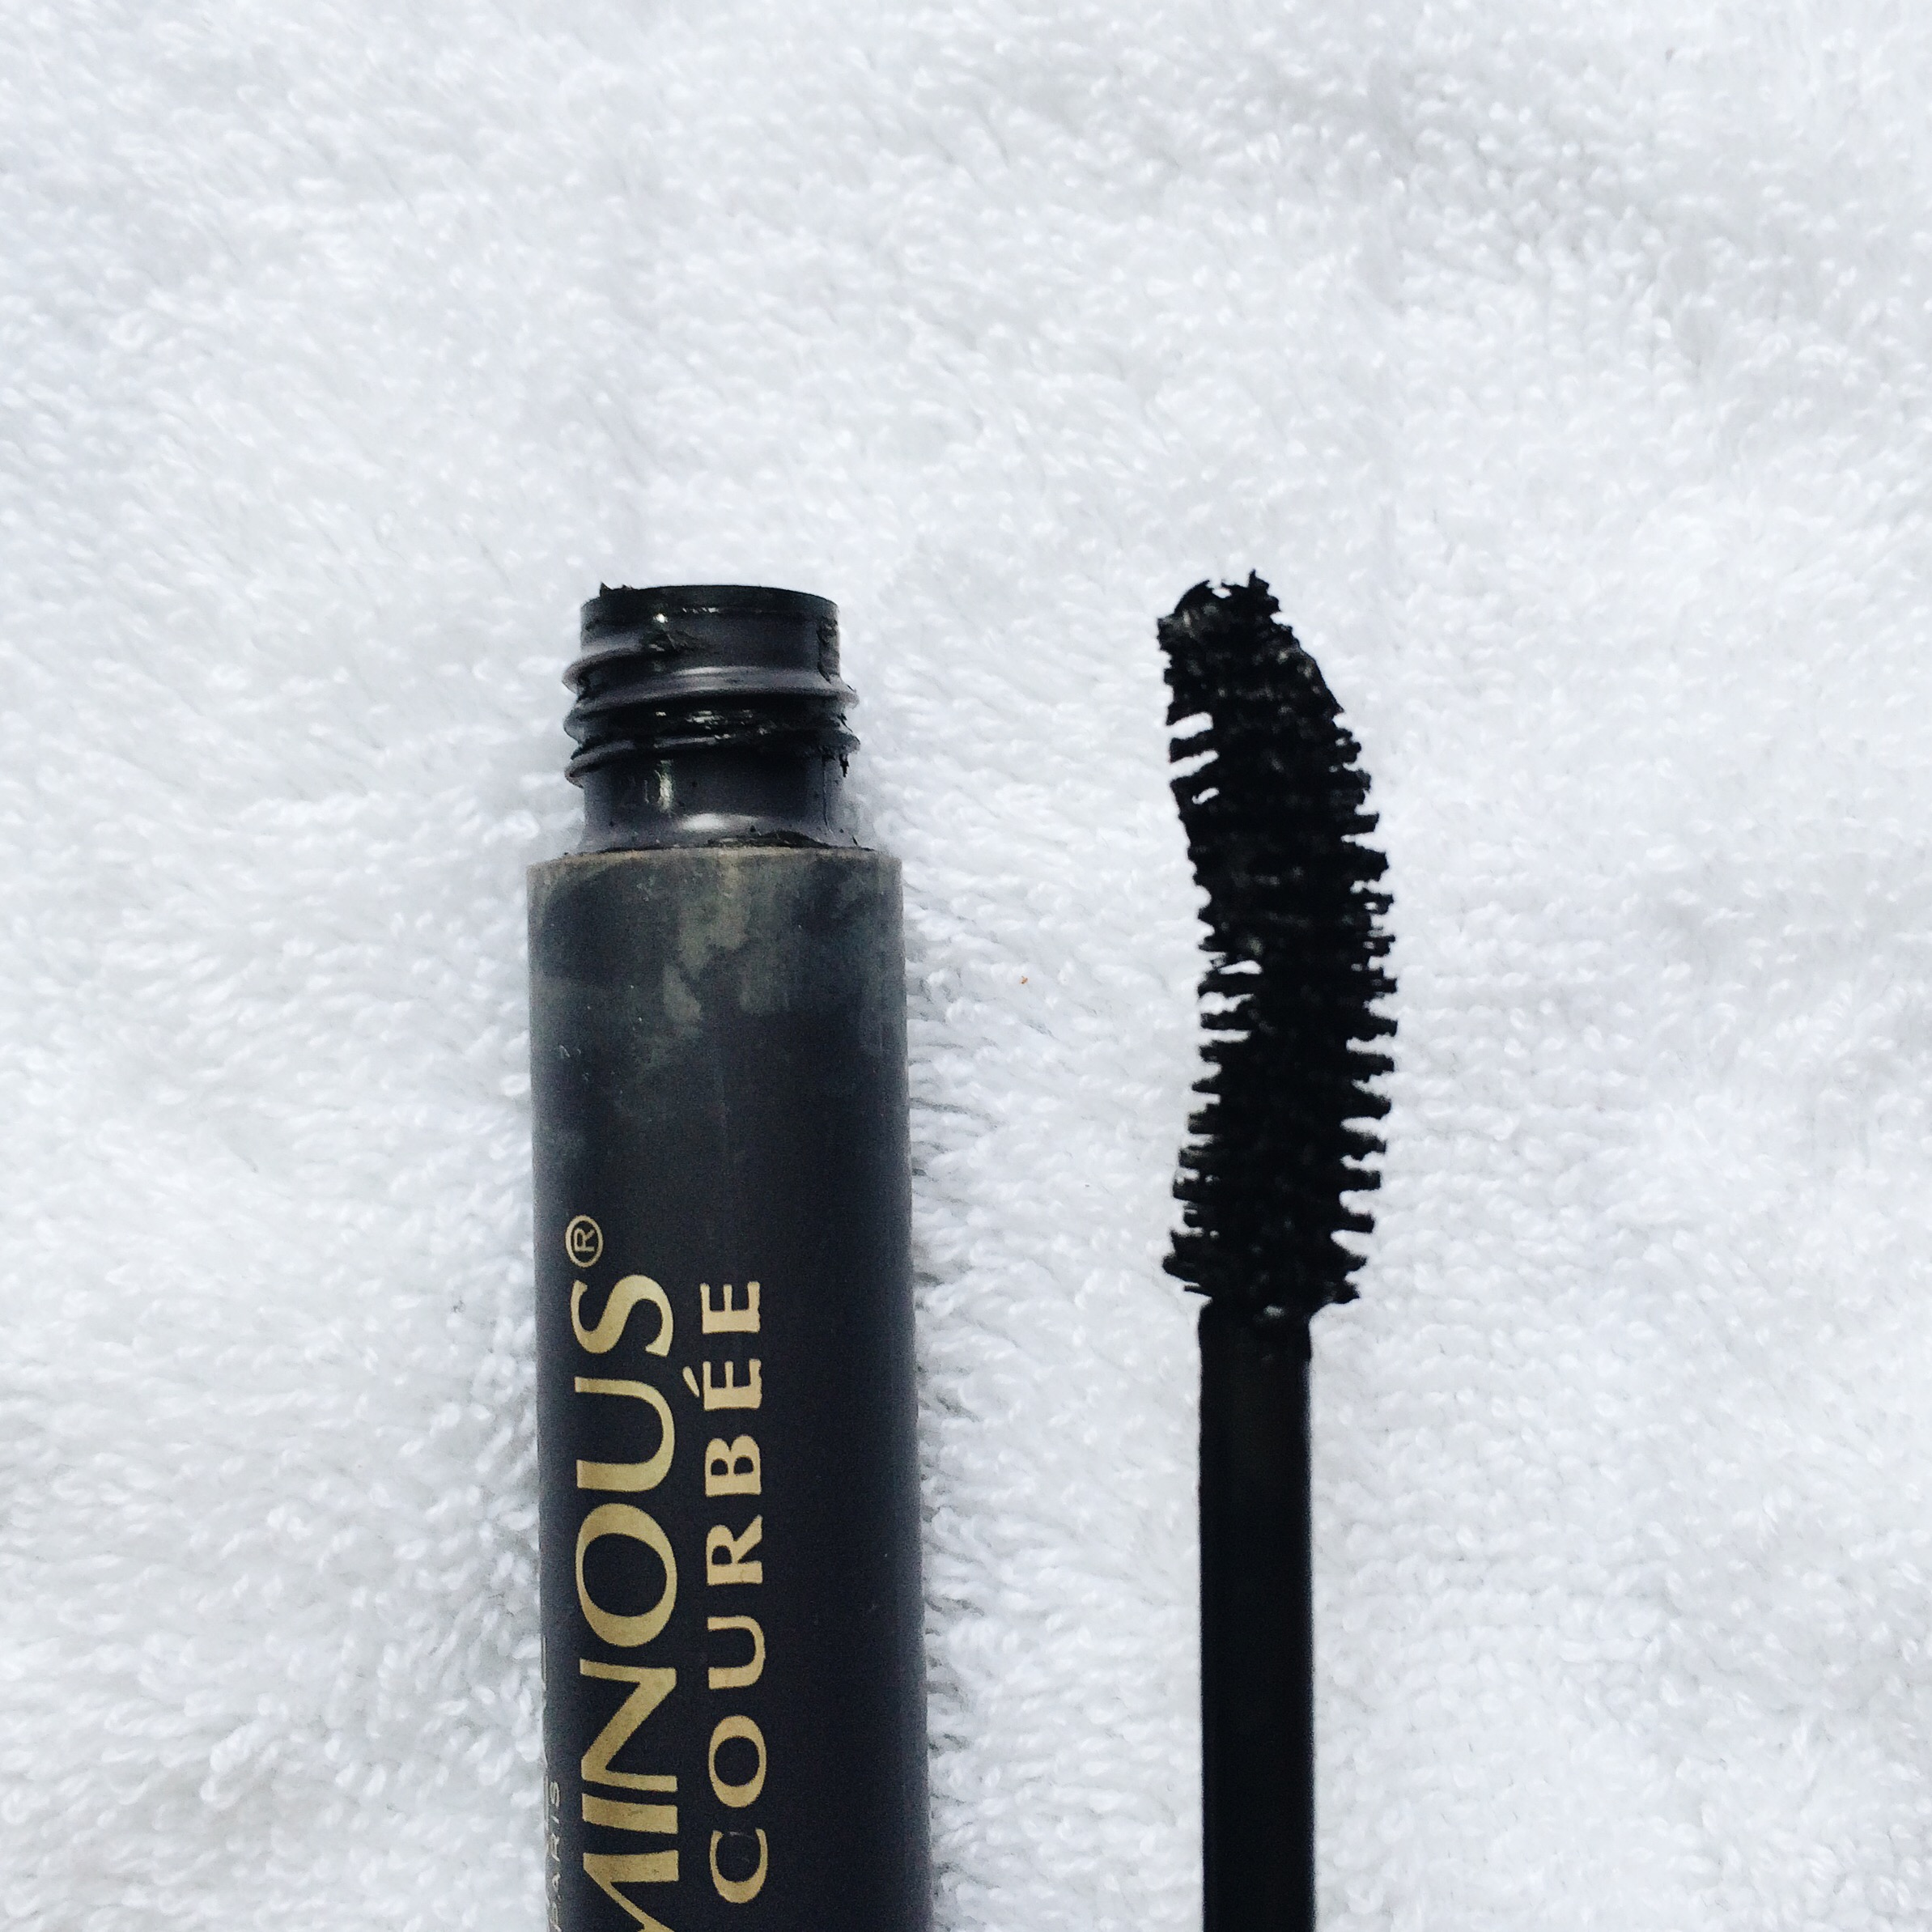 This brush looks like it will pick up a lot of product, meaning, it will really coat my lashes and give that heavy and voluminous effect. The curve of the brush will help give my lashes thatfanned look.